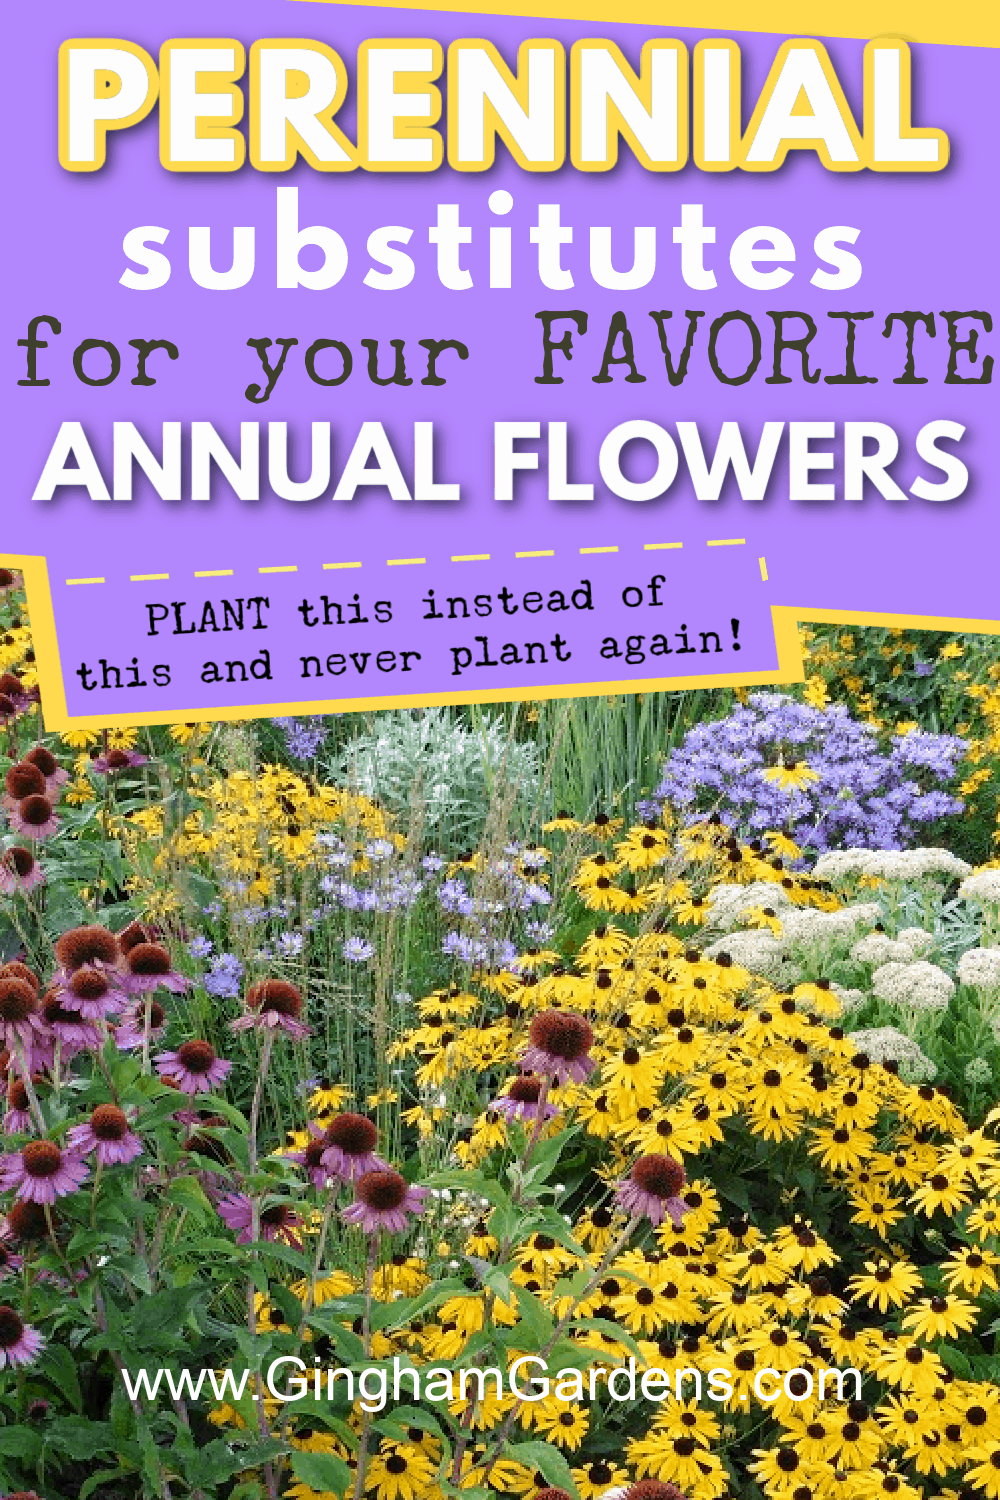 Image of a Flower Garden with text overlay - Perennial substitutes for your favorite annual flowers